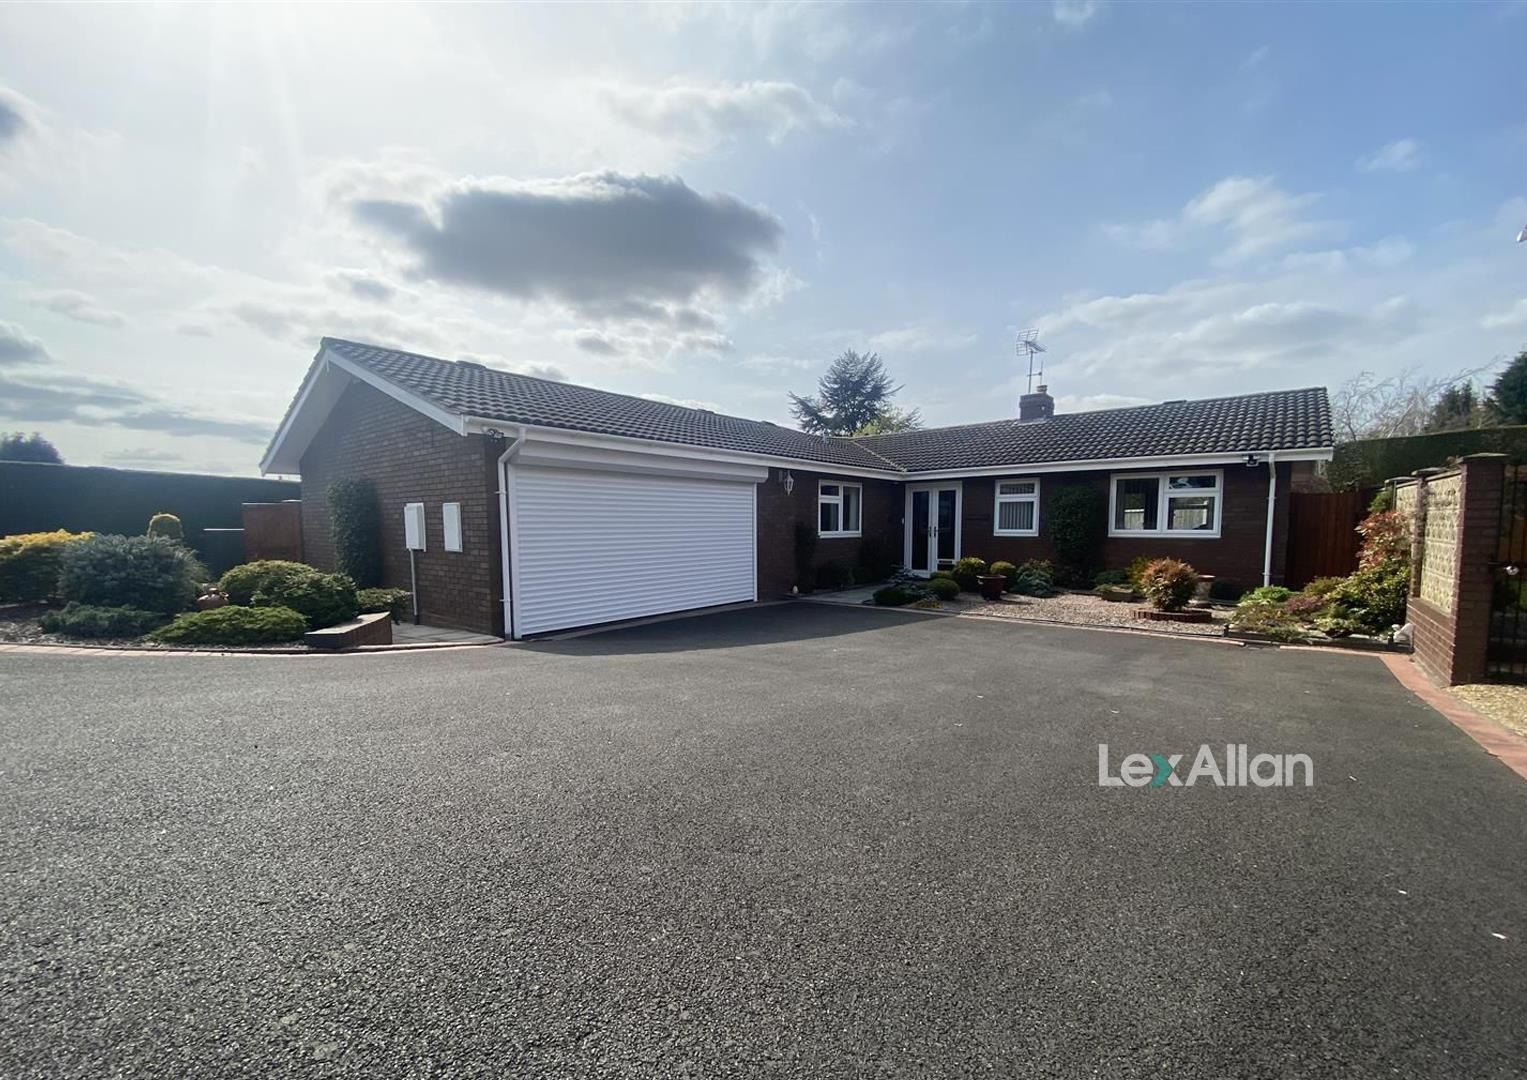 3 bed detached-bungalow for sale in Kinver - Property Image 1